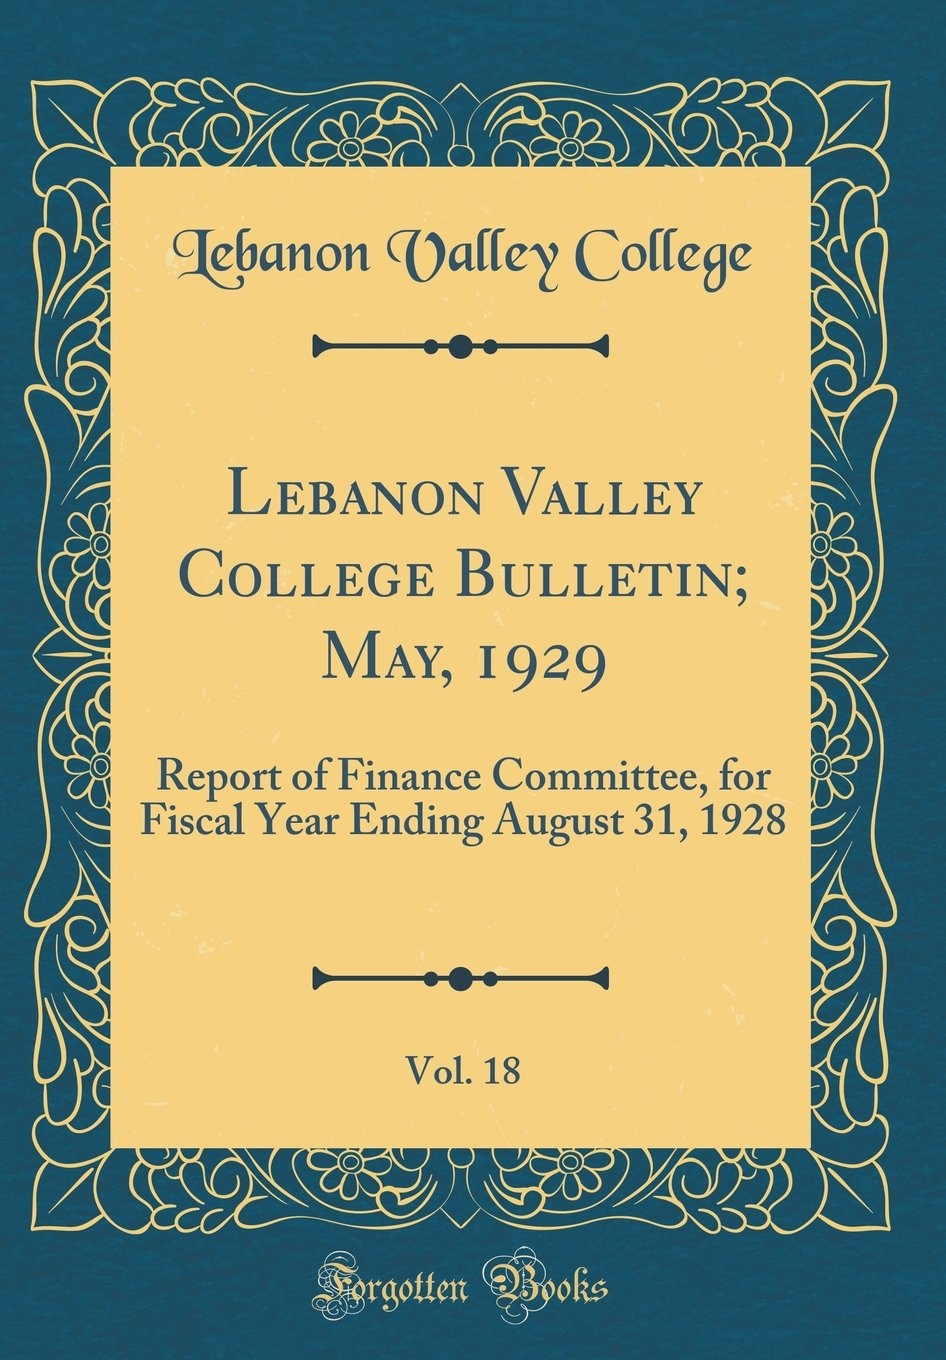 Lebanon Valley College Bulletin; May, 1929, Vol. 18: Report of Finance Committee, for Fiscal Year Ending August 31, 1928 (Classic Reprint) ebook